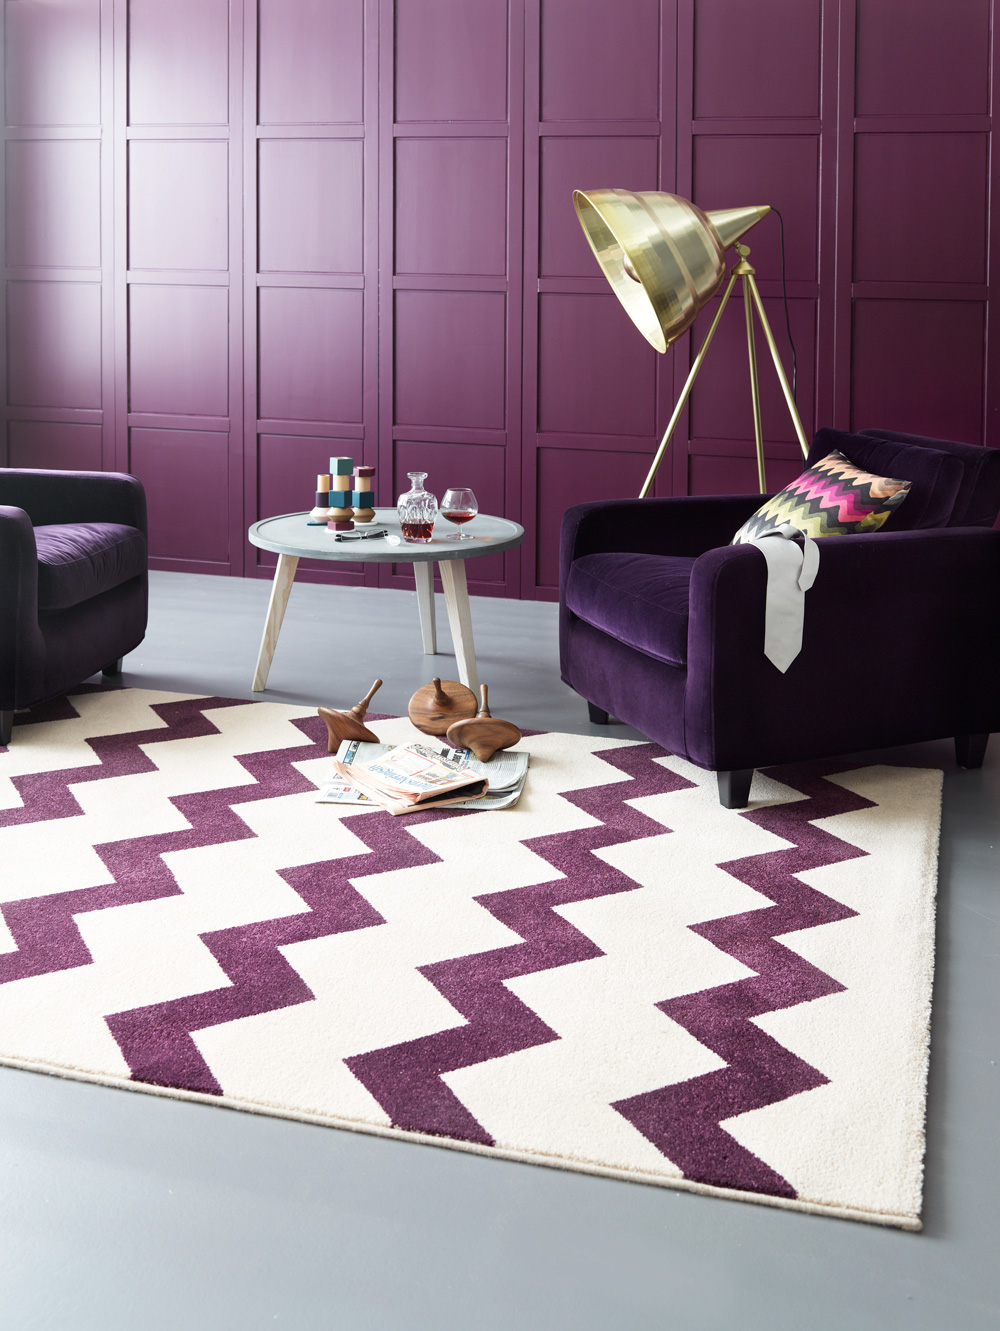 Scandinavian chic: our newest rugs   one of them could be yours!